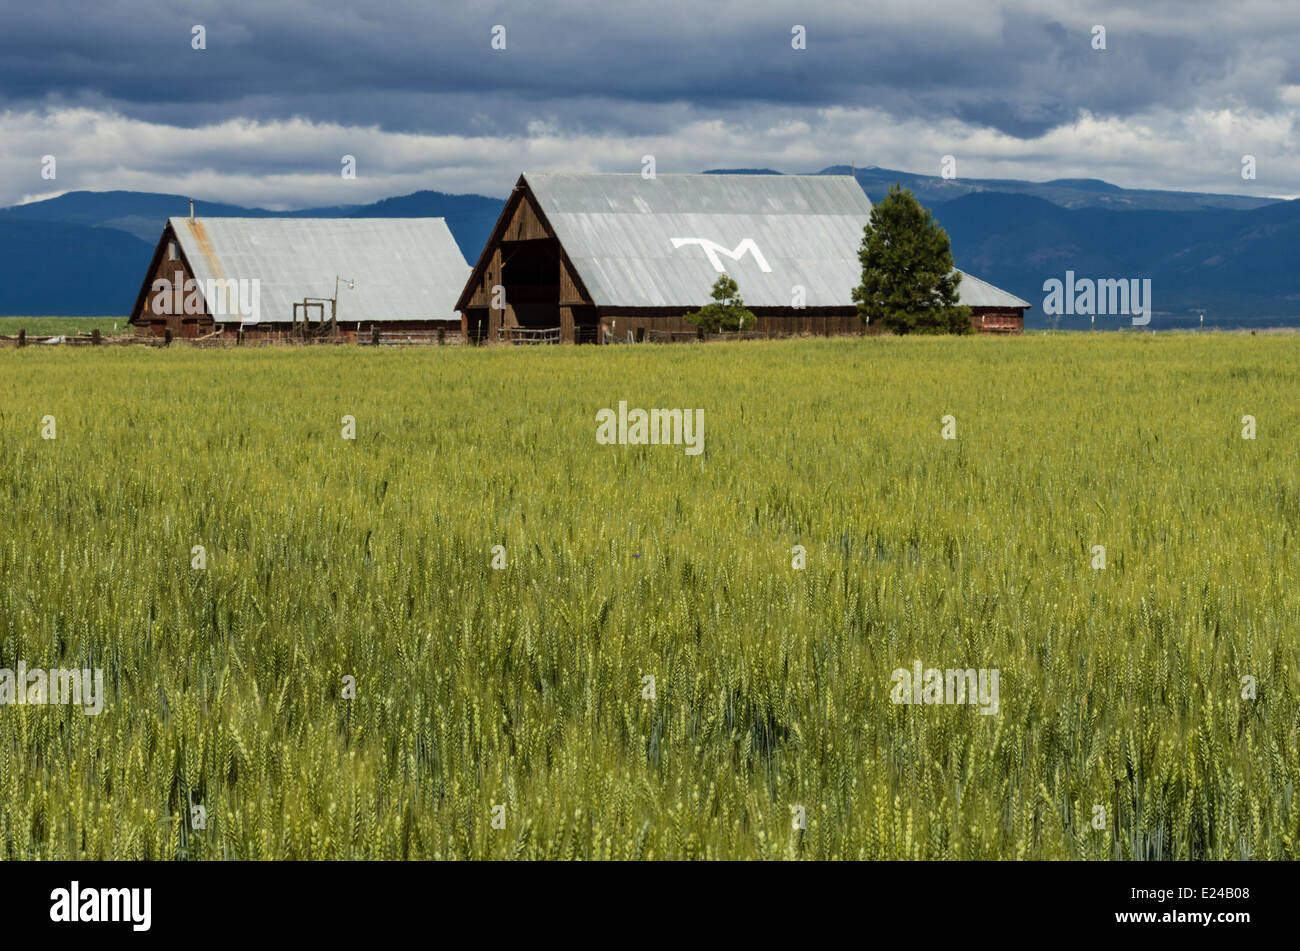 Wheat farm with wheat nearly ready to harvest.  maupin, Oregon - Stock Image